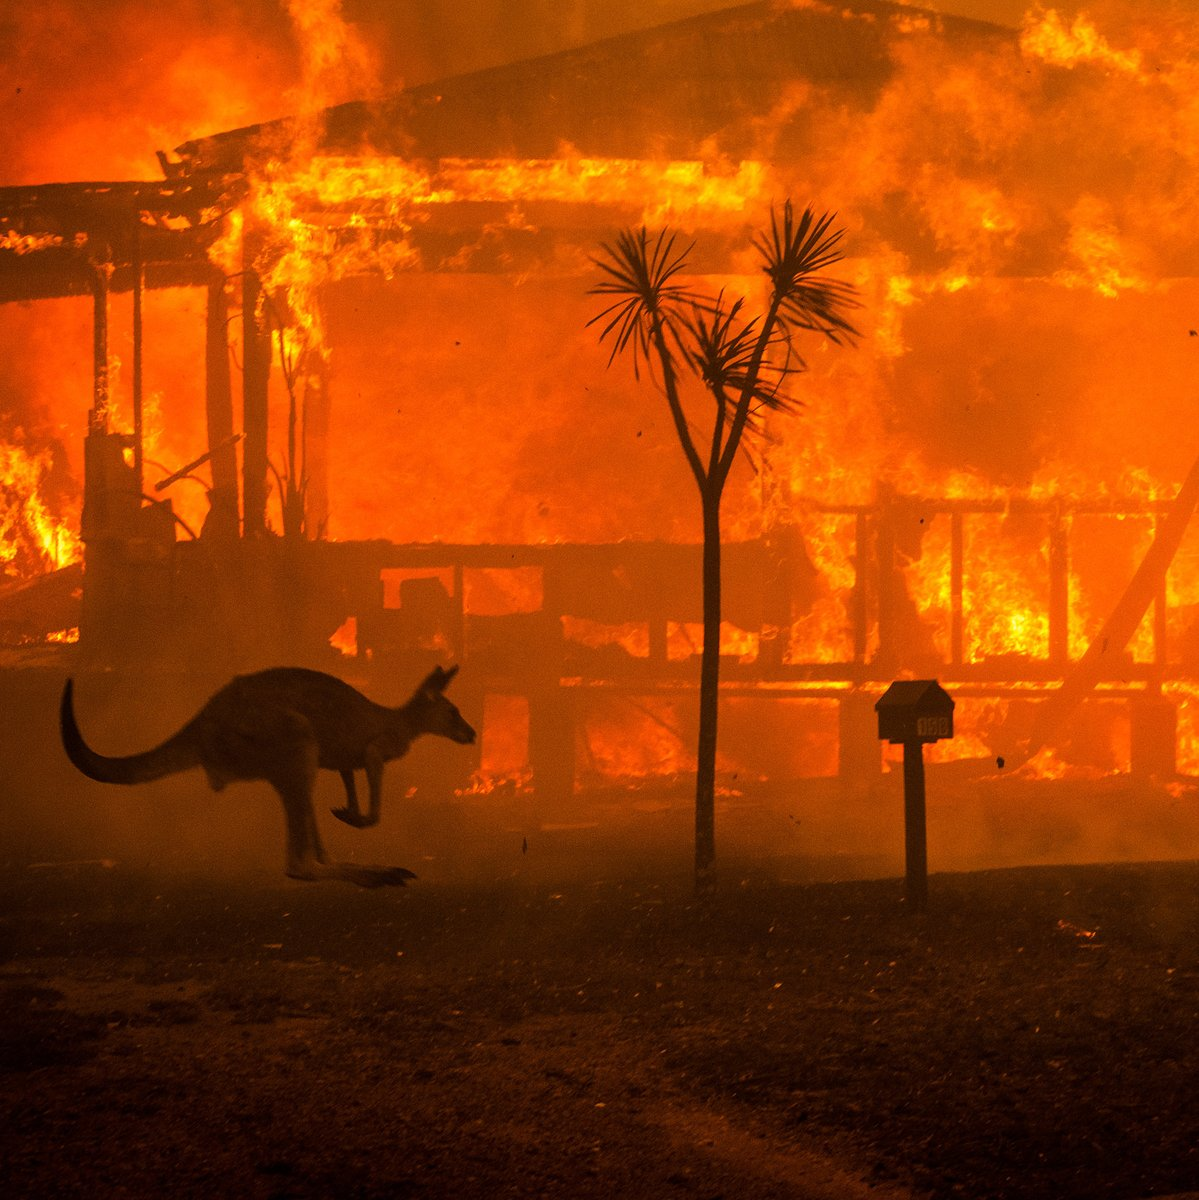 Do you remember when we all thought 2020 would be a great year? And we haven't done half yet.  #AustralianFires #COVID19 #Kobebryant #JusticeForGeorgeFloydpic.twitter.com/RABJBZ0hvw